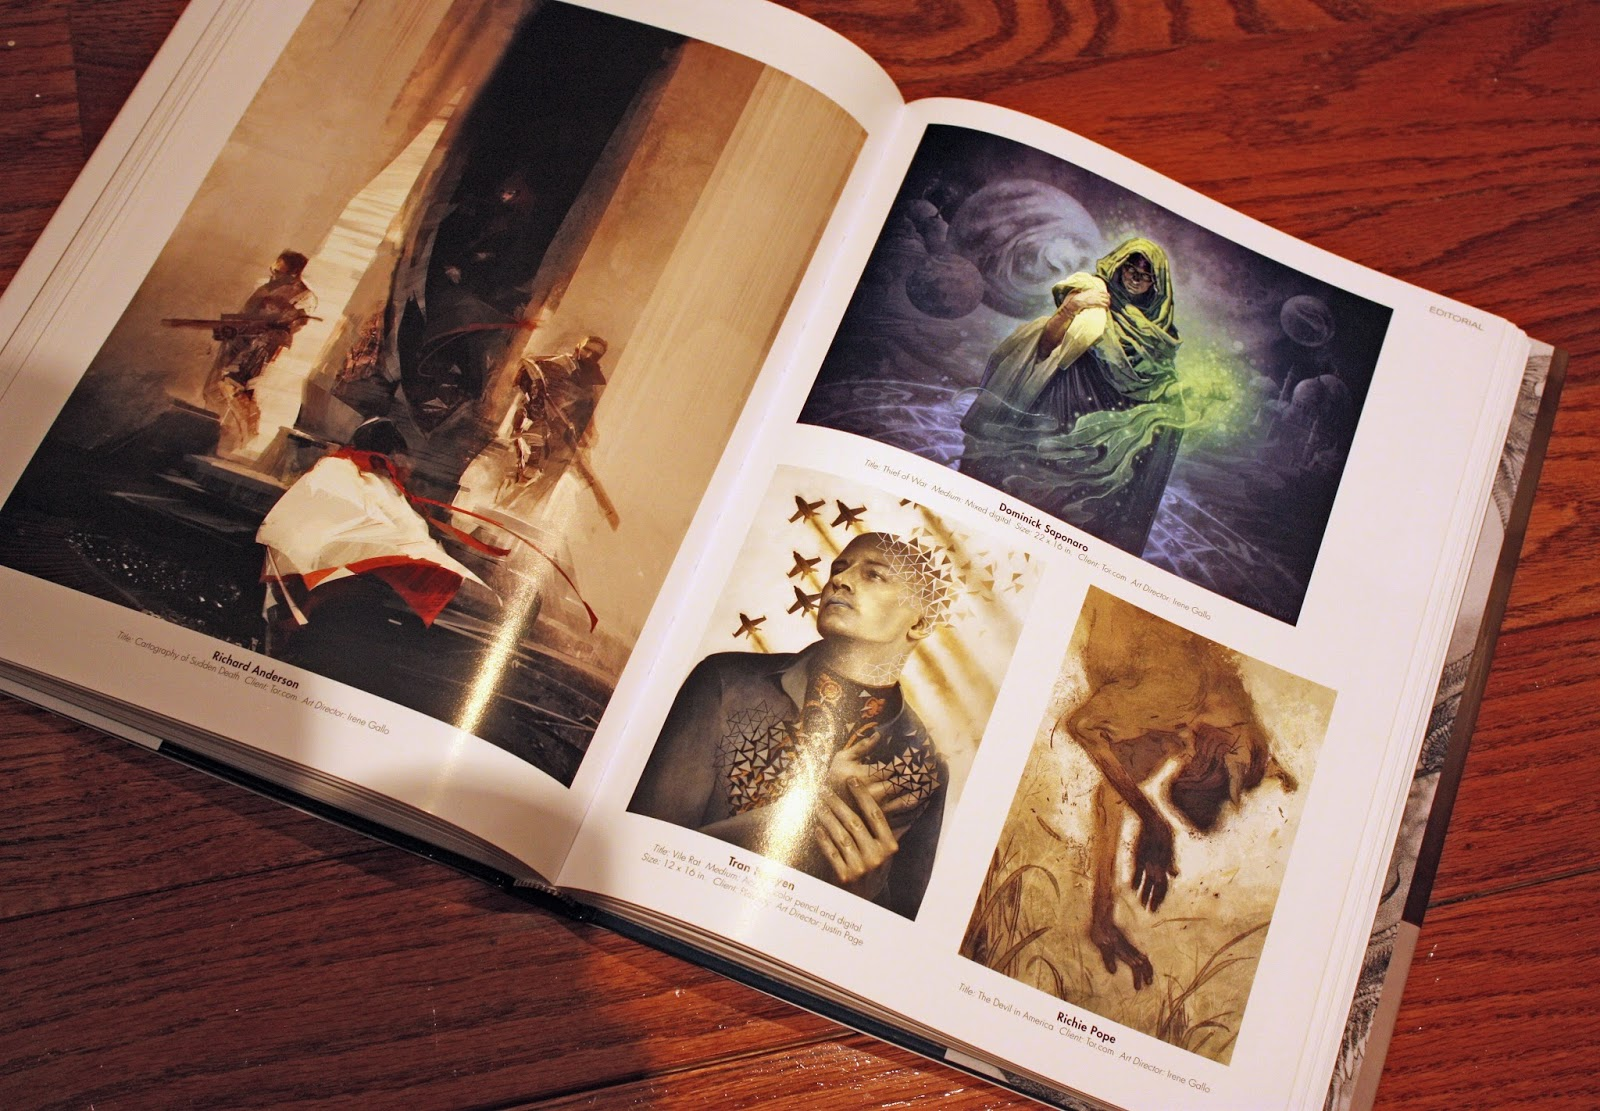 A nice spread of Tor.com illustrations/artists.  Left Page:  Richard Anderson.  Top Right:  Me!  Bottom Left Right Page:  Tran Nguyen.  Bottom Right Right Page:  Richie Pope.